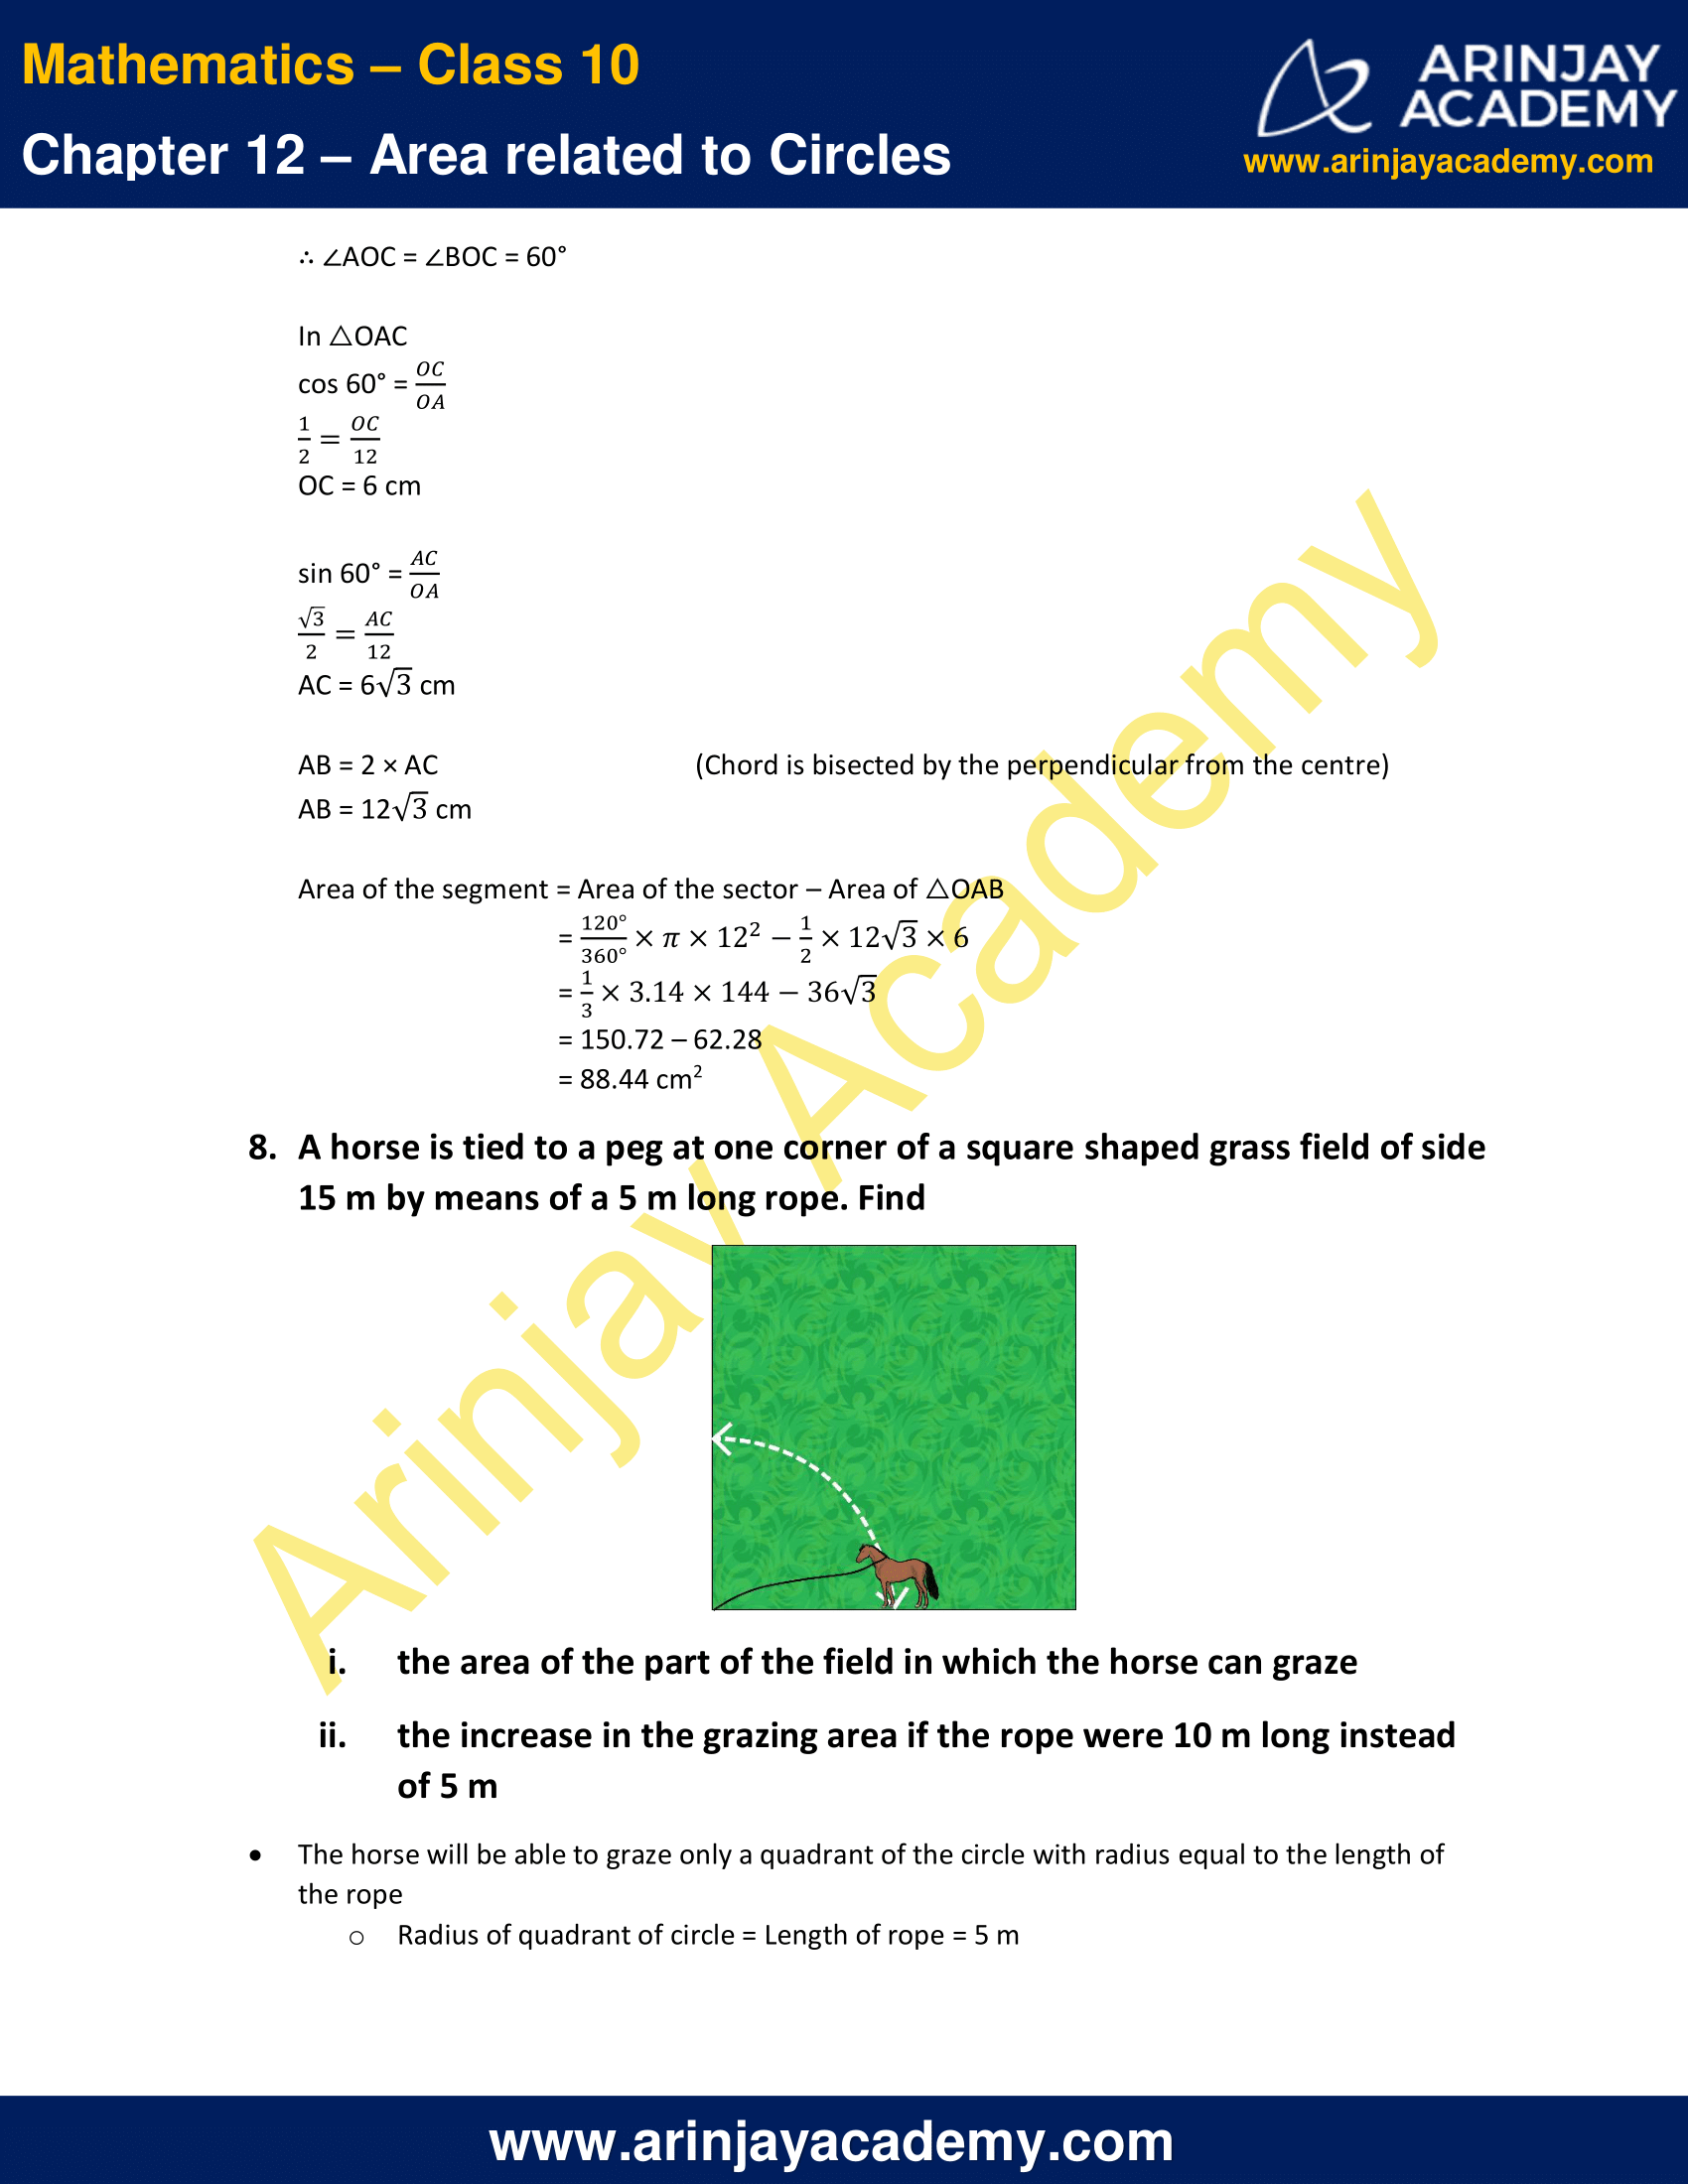 NCERT Solutions For Class 10 Maths Chapter 12 Exercise 12.2 image 5